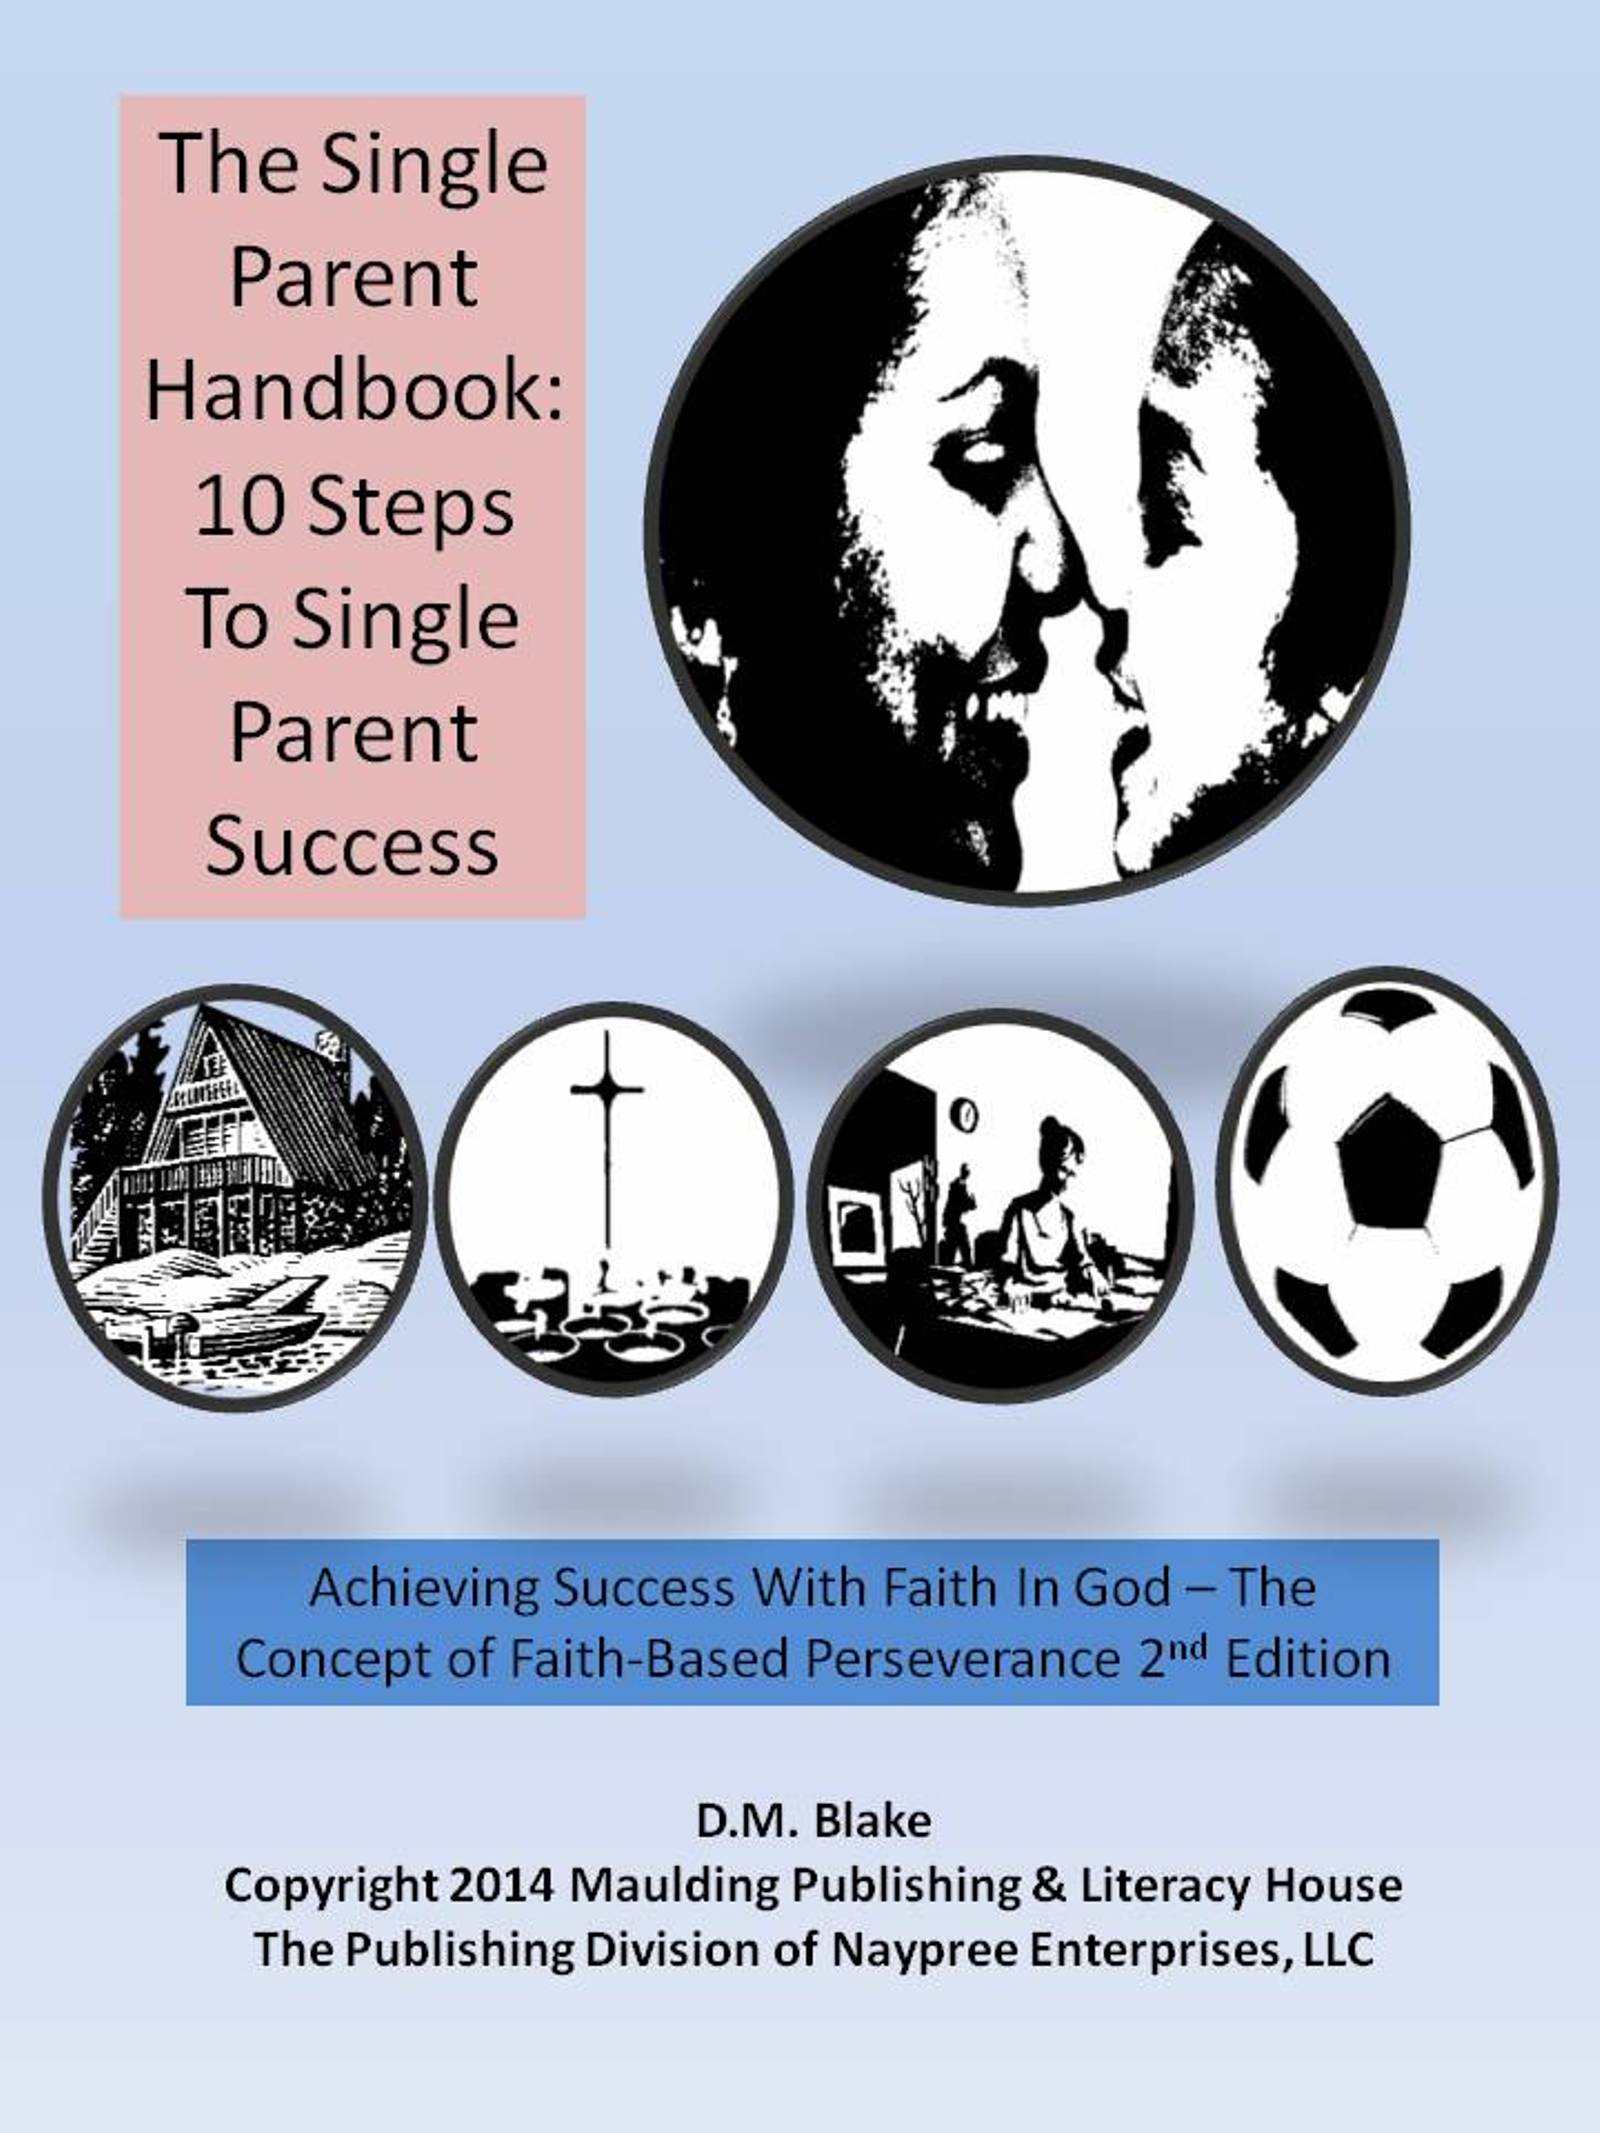 The Single Parent Handbook: 10 Steps To Single Parent Success - Achieving  Success With Faith In God - The Concept of Faith-Based Perseverance, 2nd